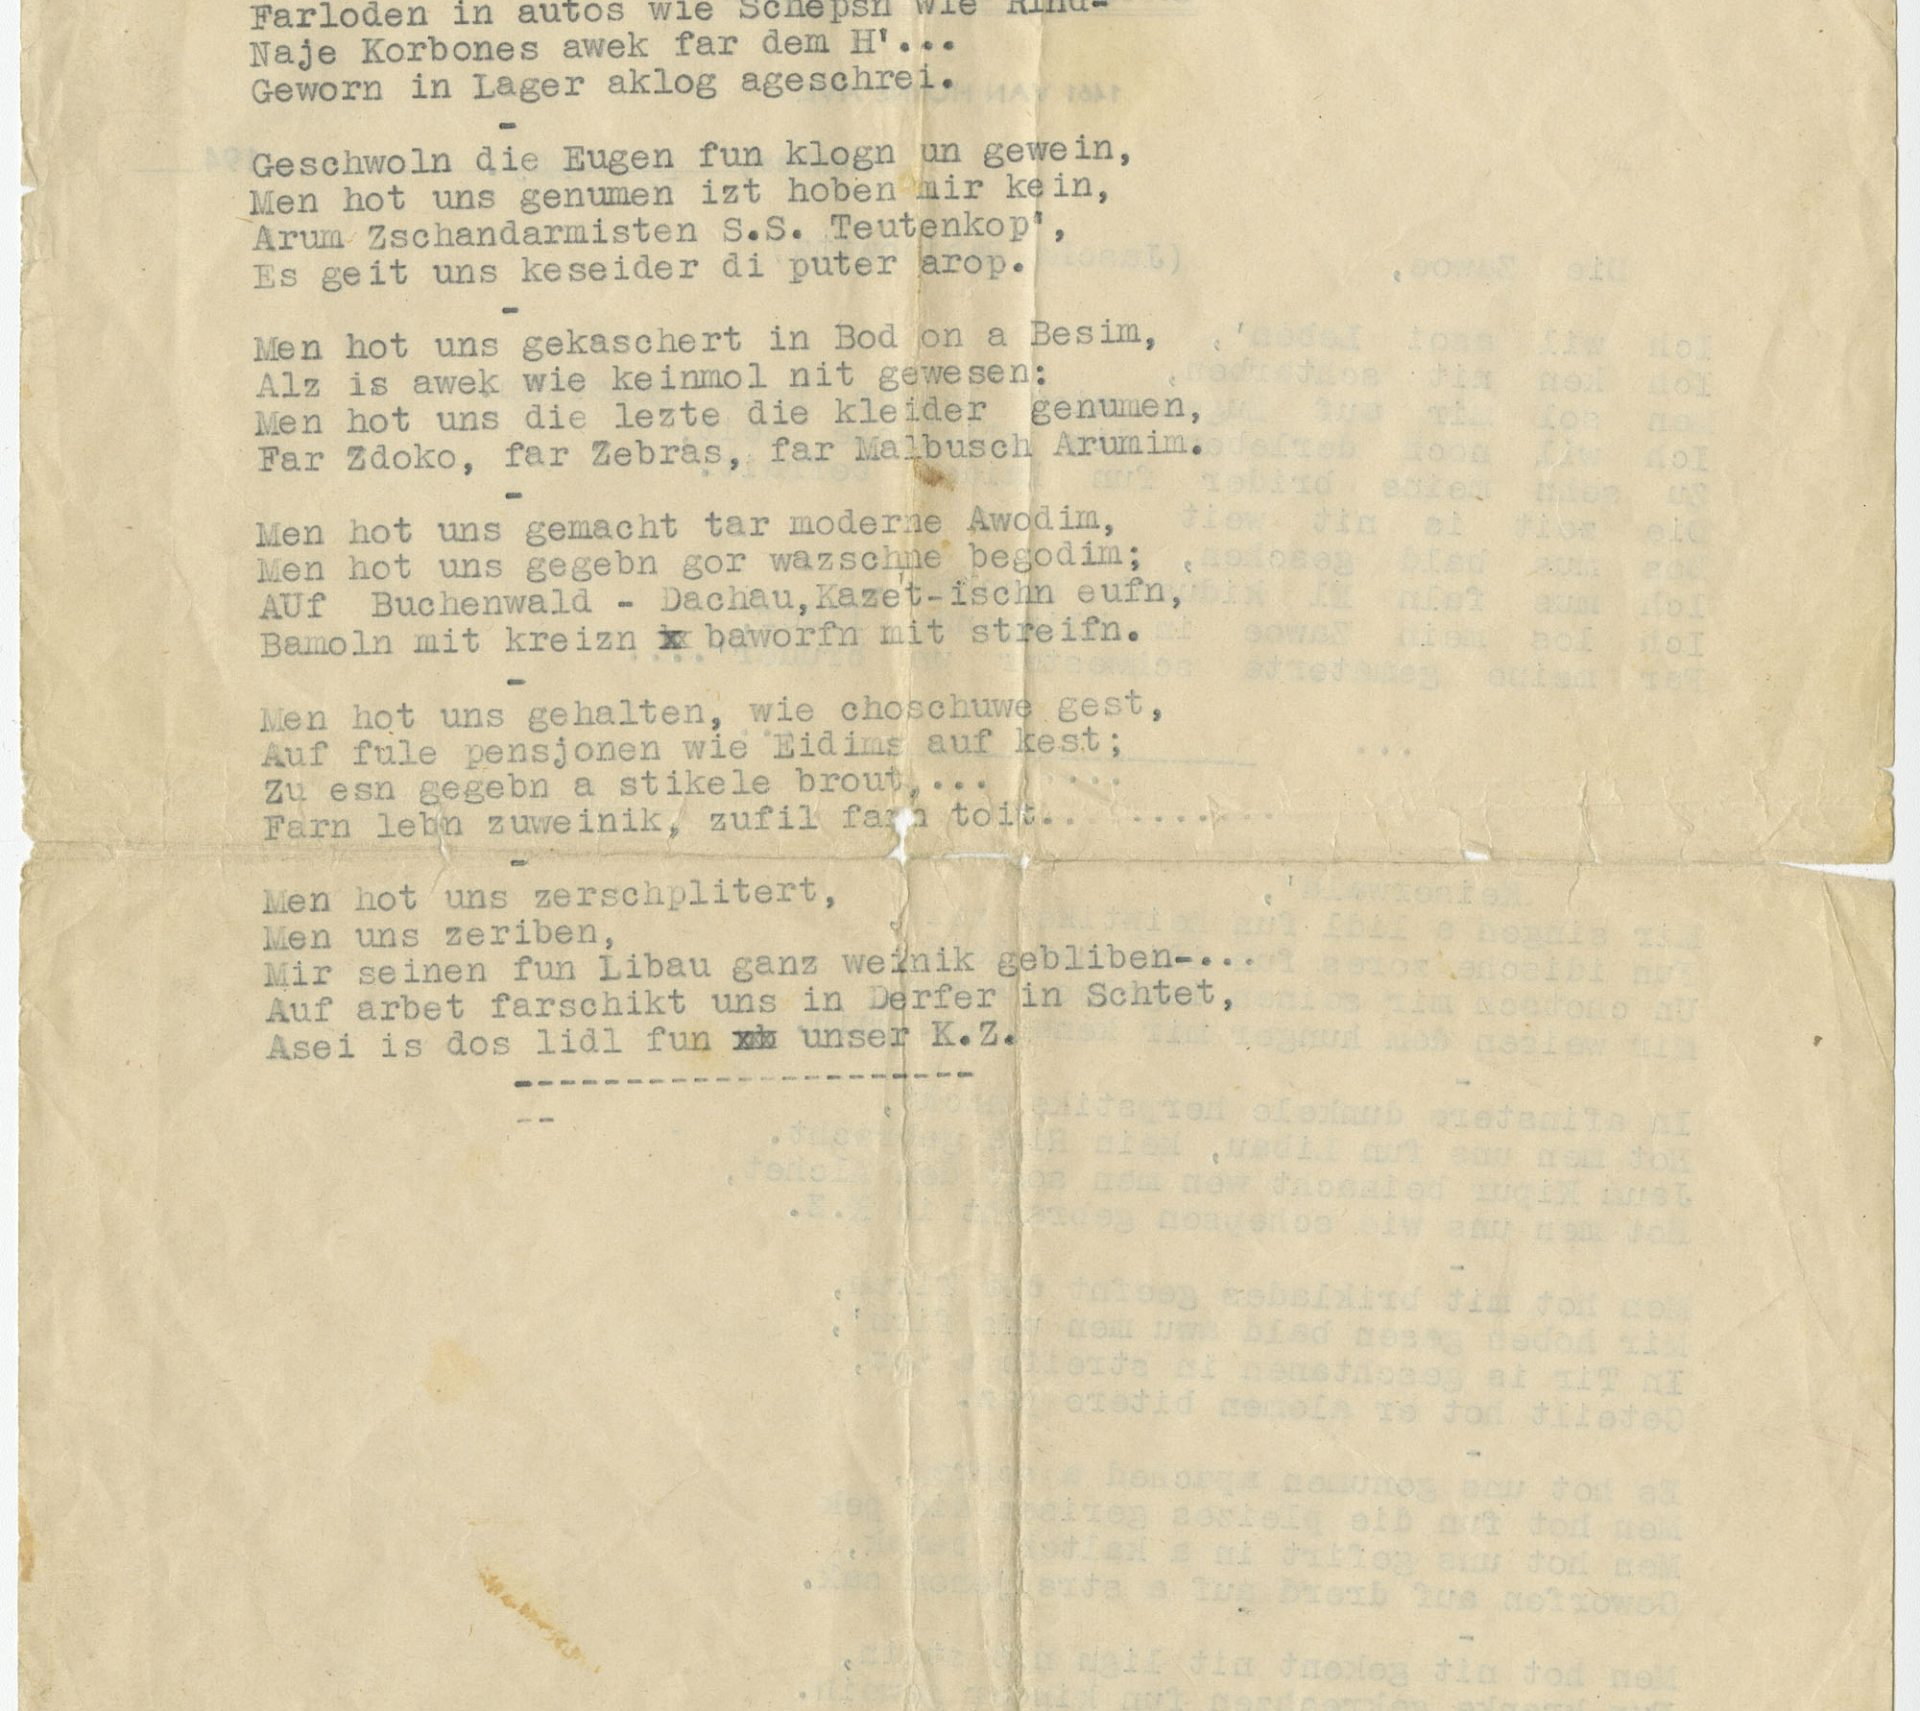 The poems were written with a typewriter by Jennie Lifschitz, who remembered hearing the poems in concentration camps.